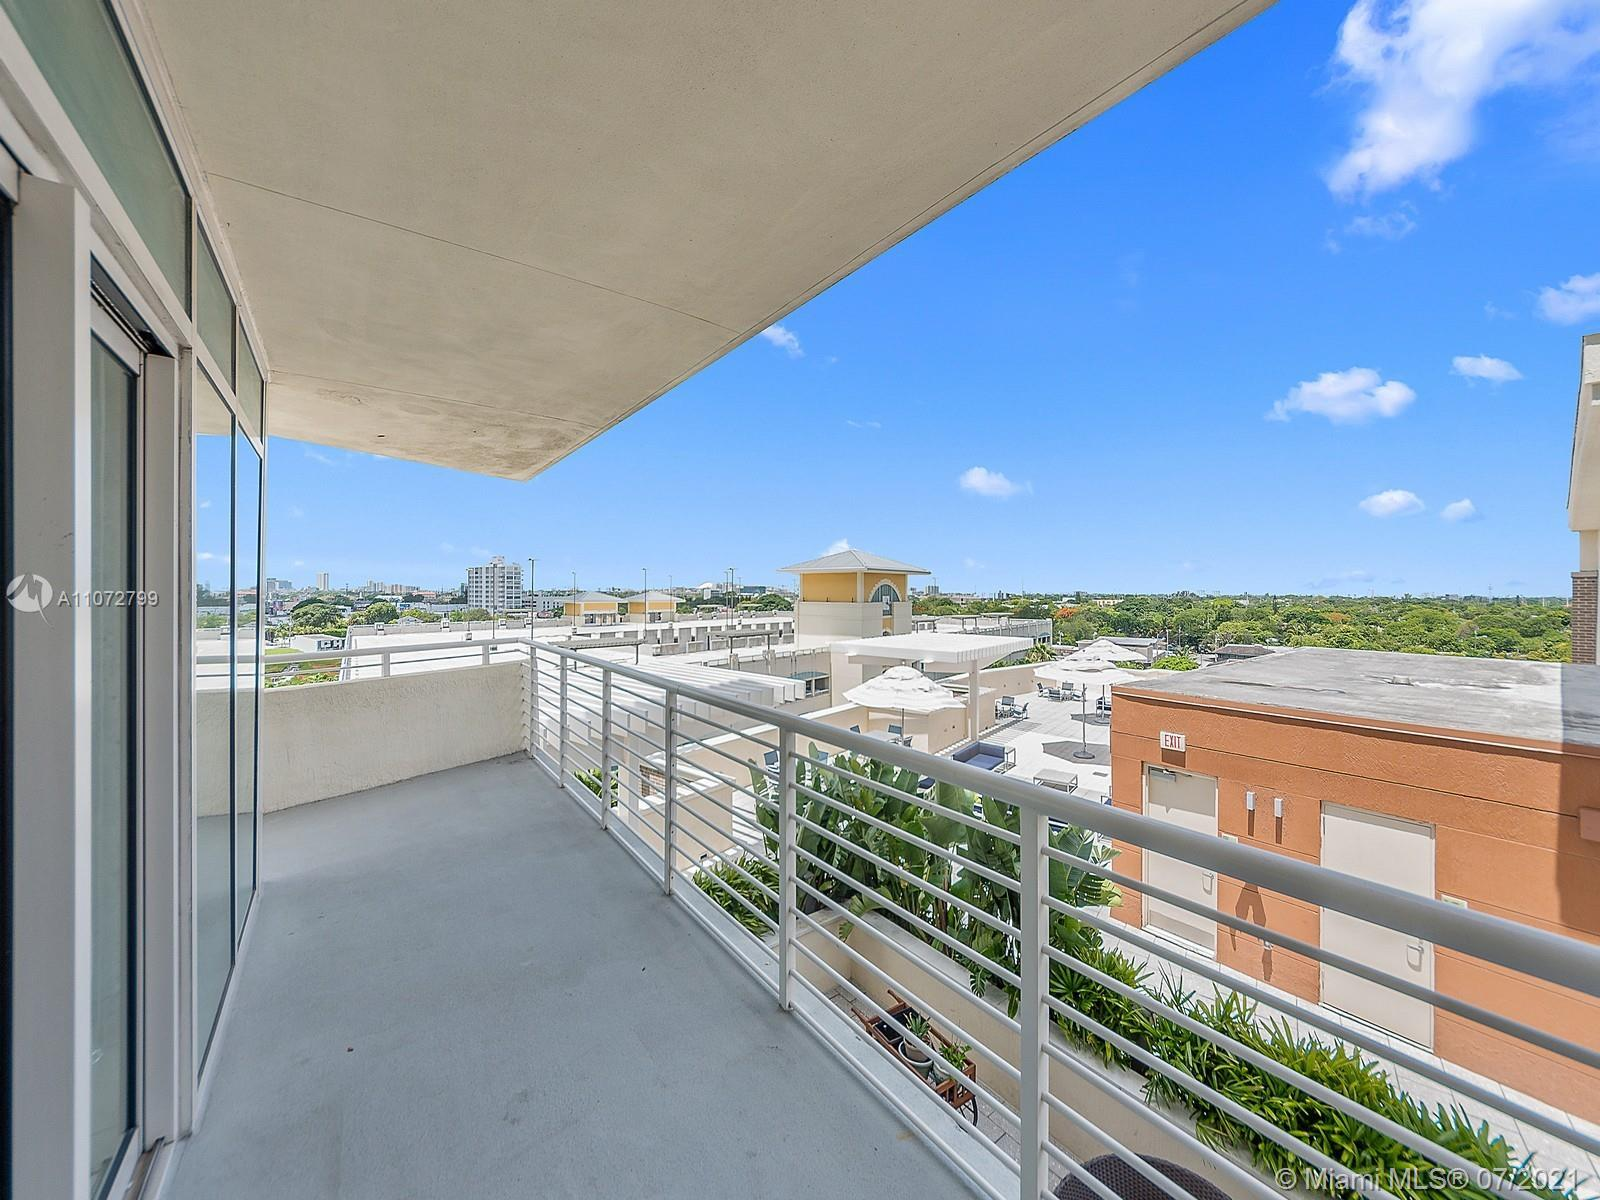 Live in the heart of Midtown and enjoy all the neighborhood has to offer while soaking in the Miami